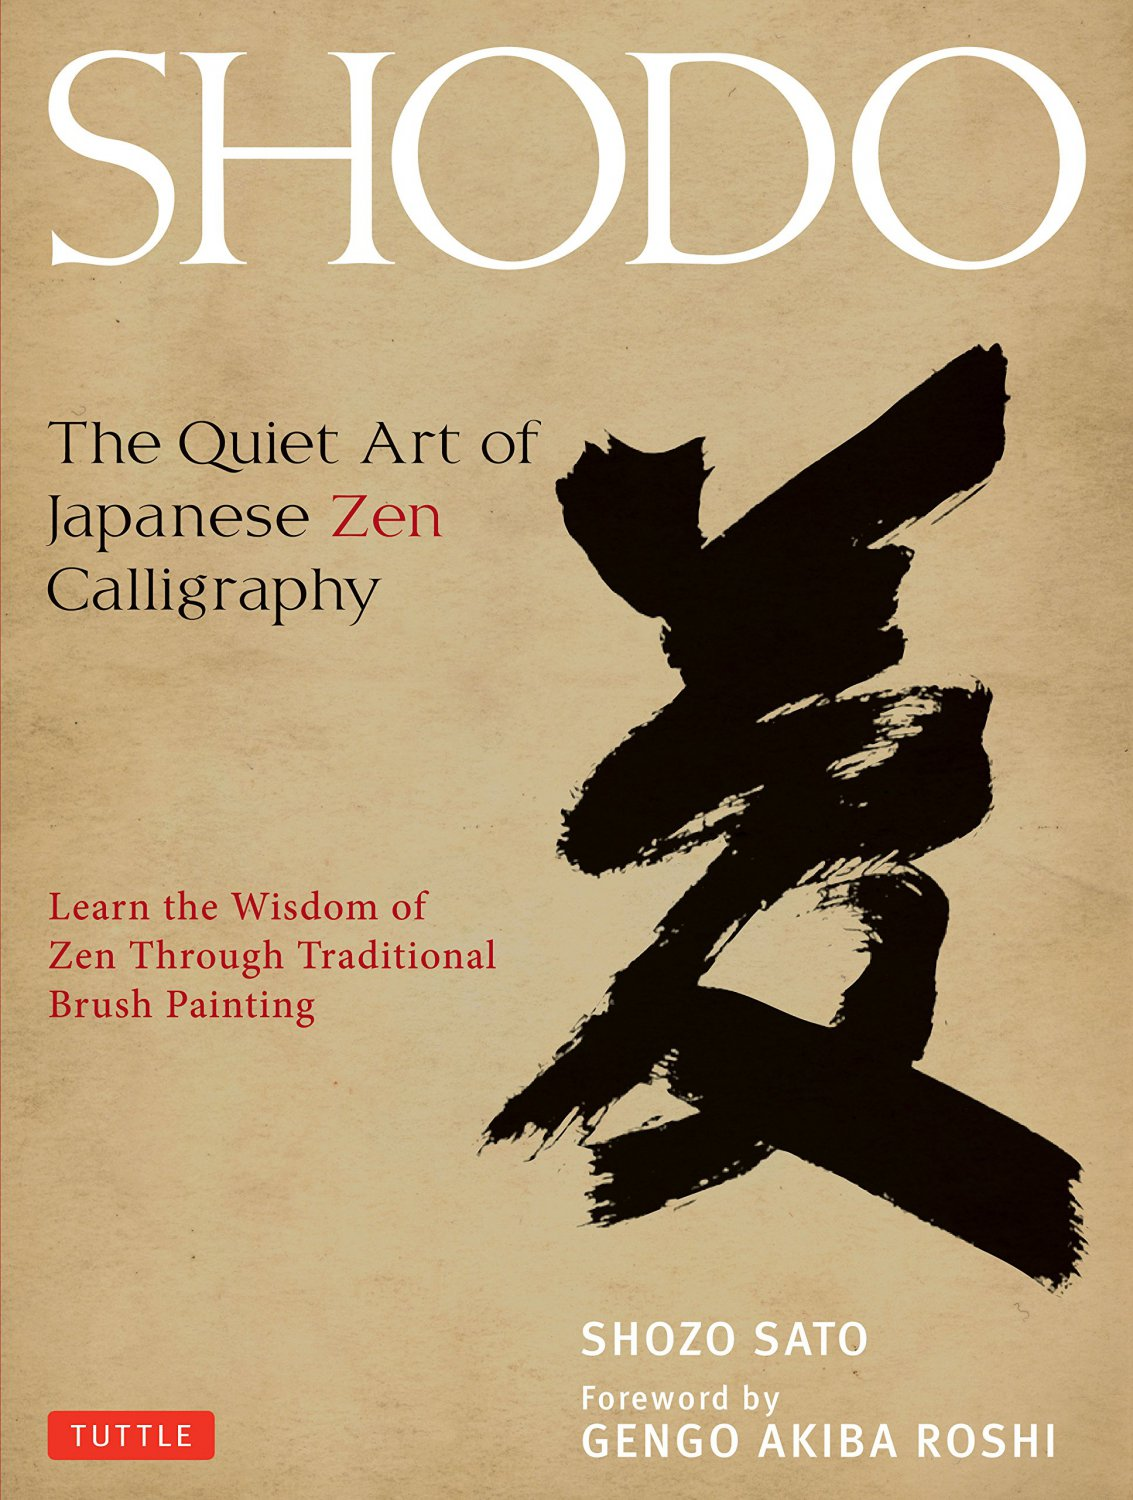 Shodo: The Quiet Art of Japanese Zen Calligraphy (Guide to) by Shozo Sato [eBook]